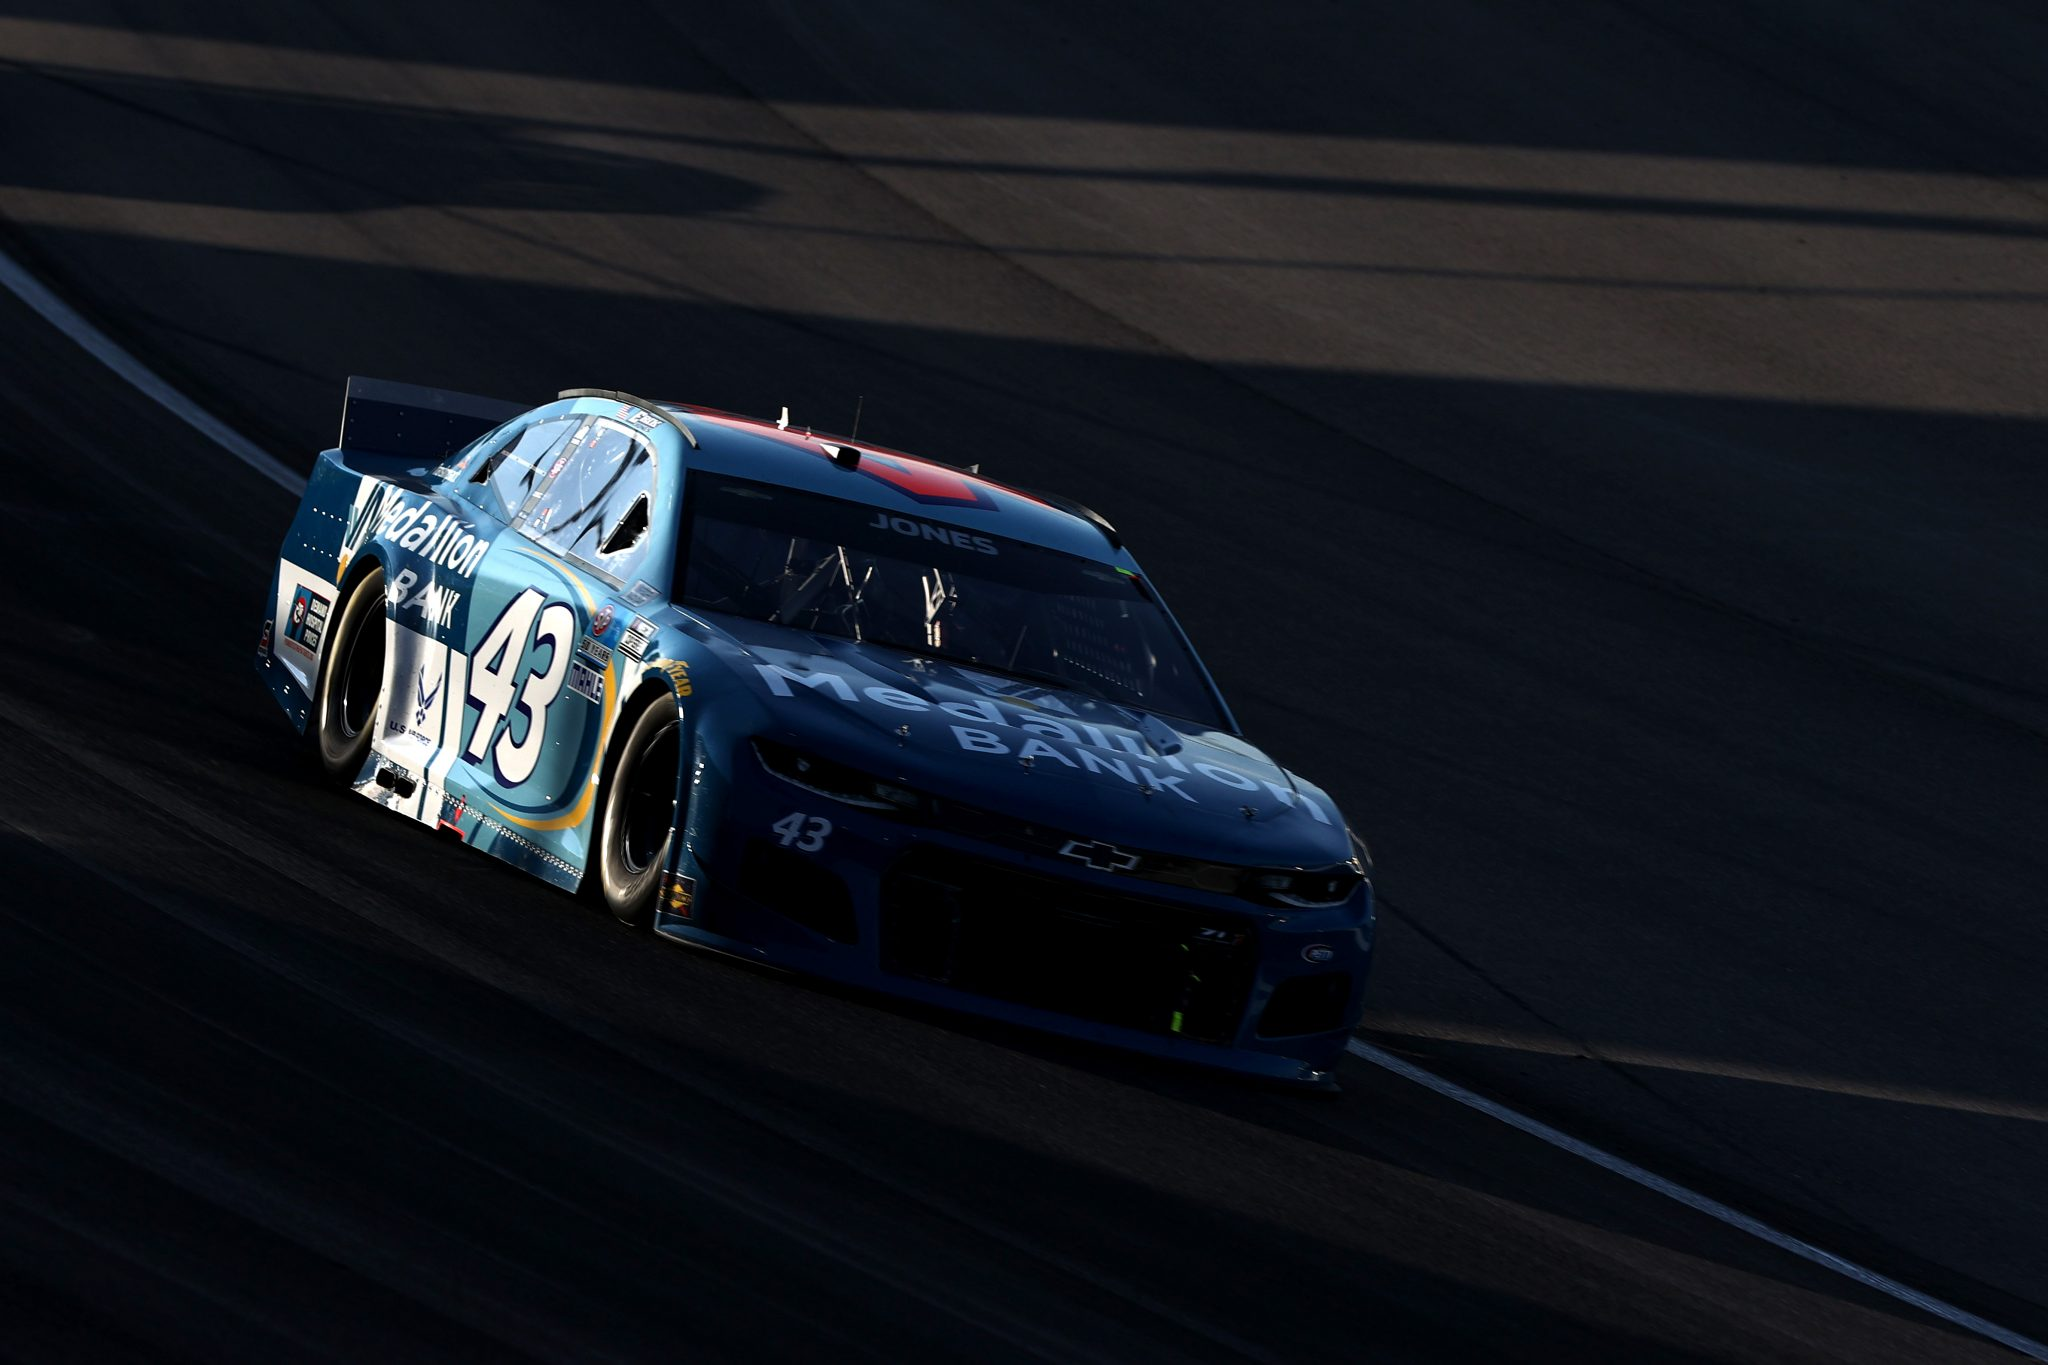 LAS VEGAS, NEVADA - SEPTEMBER 26: Erik Jones, driver of the #43 Medallion Bank Chevrolet, drives during the NASCAR Cup Series South Point 400 at Las Vegas Motor Speedway on September 26, 2021 in Las Vegas, Nevada. (Photo by Meg Oliphant/Getty Images)   Getty Images